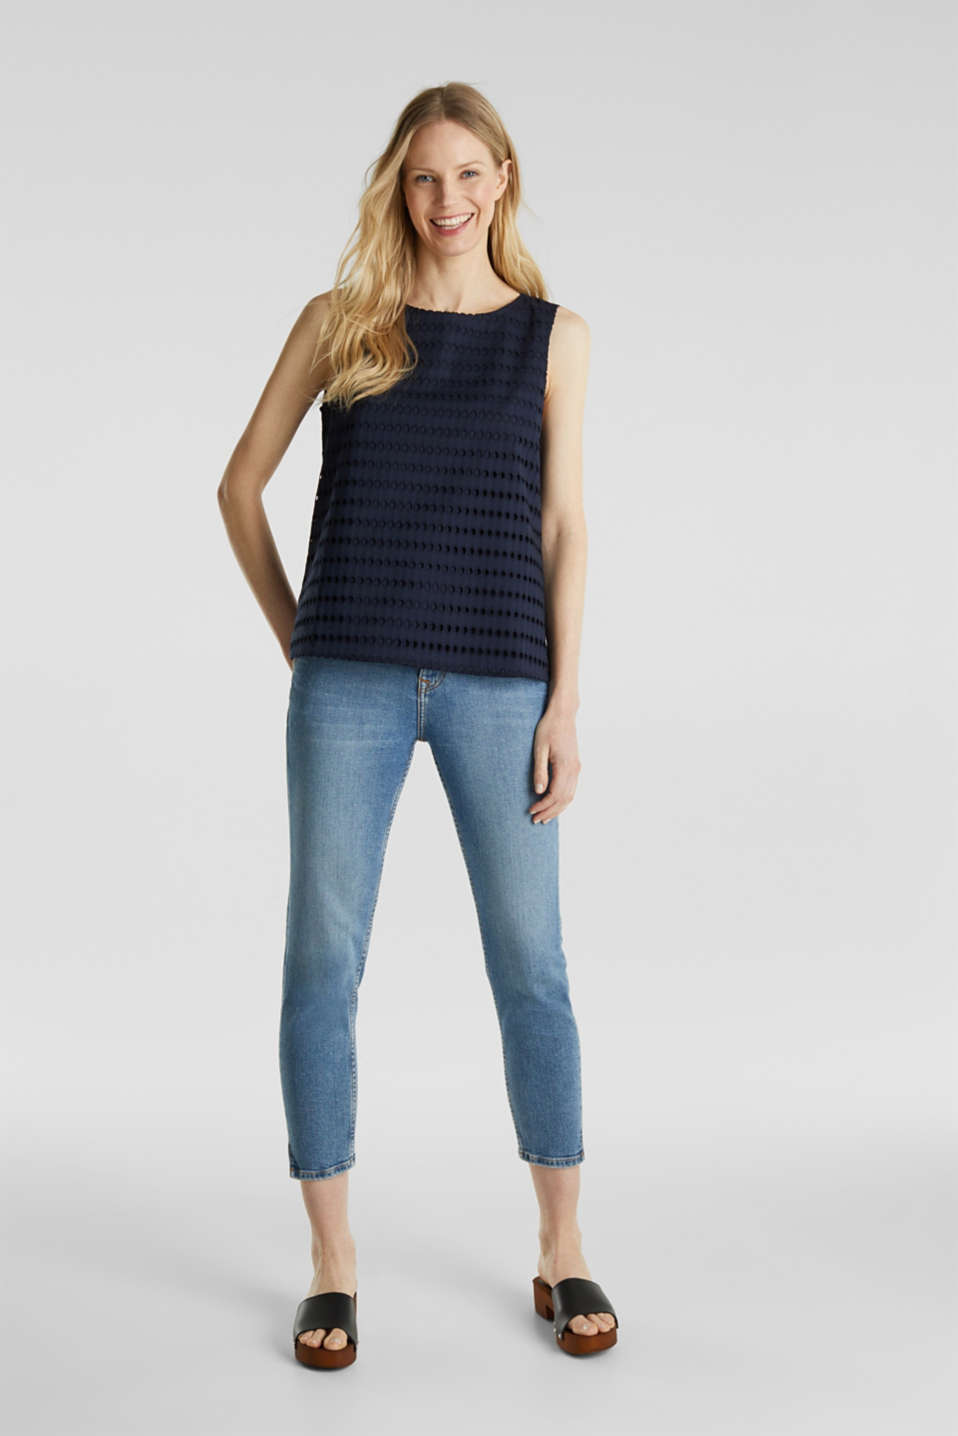 Blouse top, 100% cotton, NAVY, detail image number 1